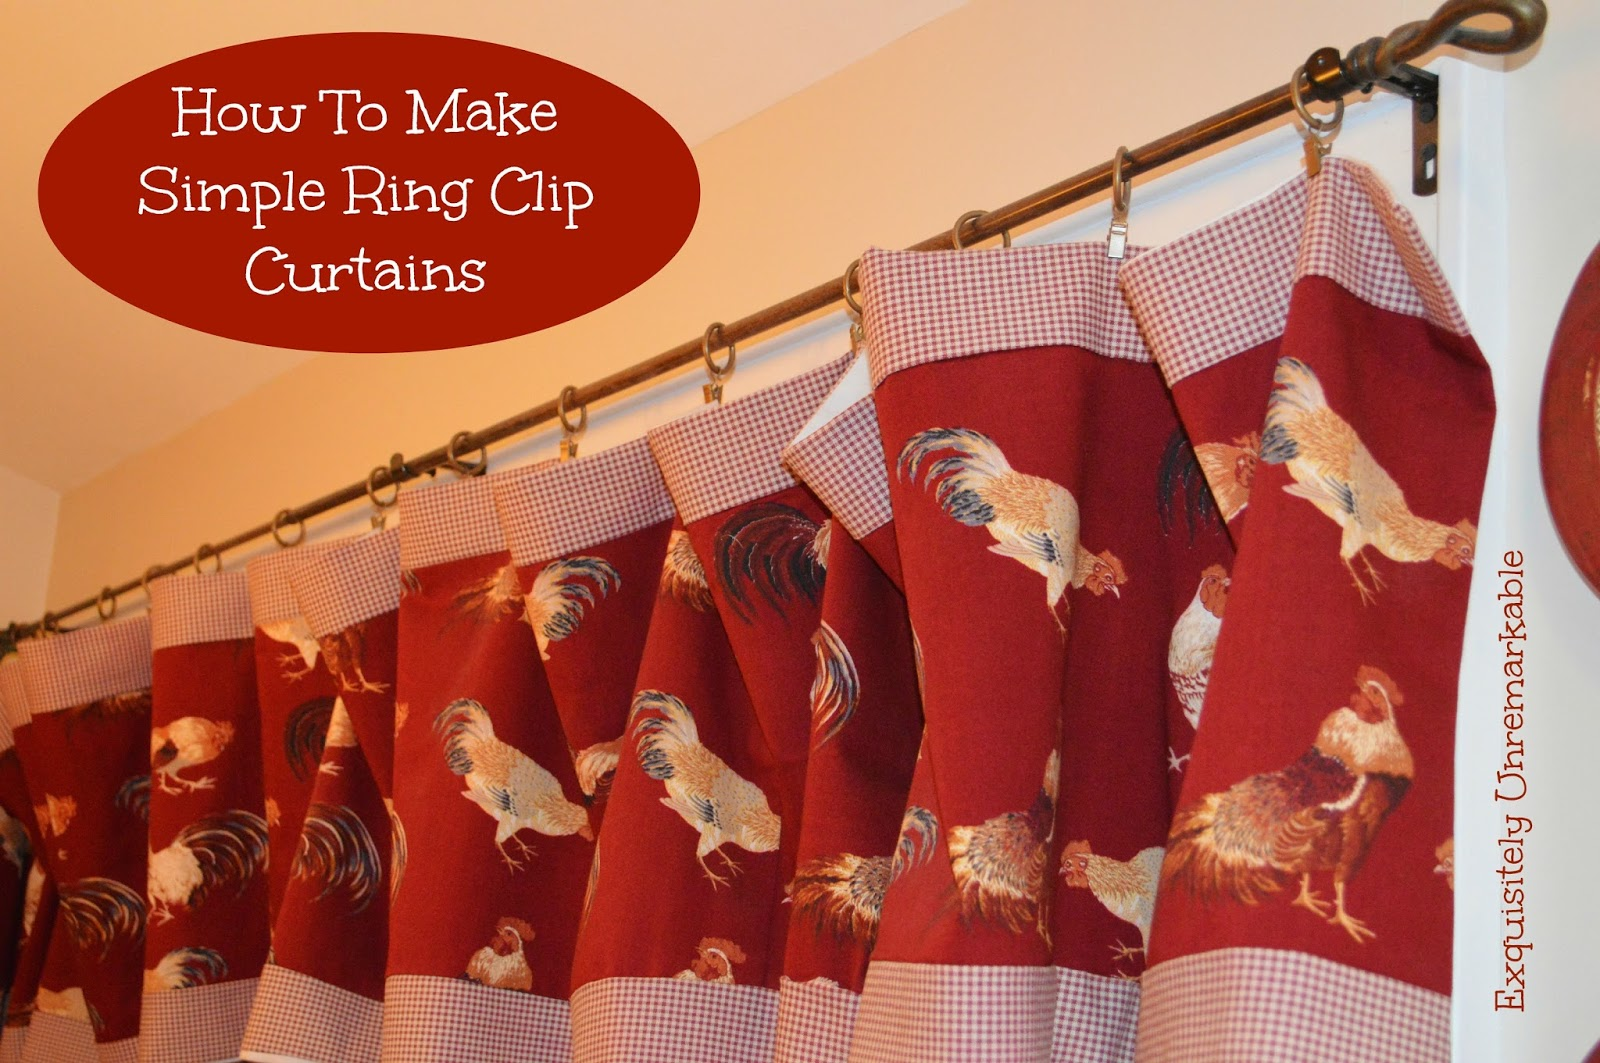 How To Make Ring Clip Curtains